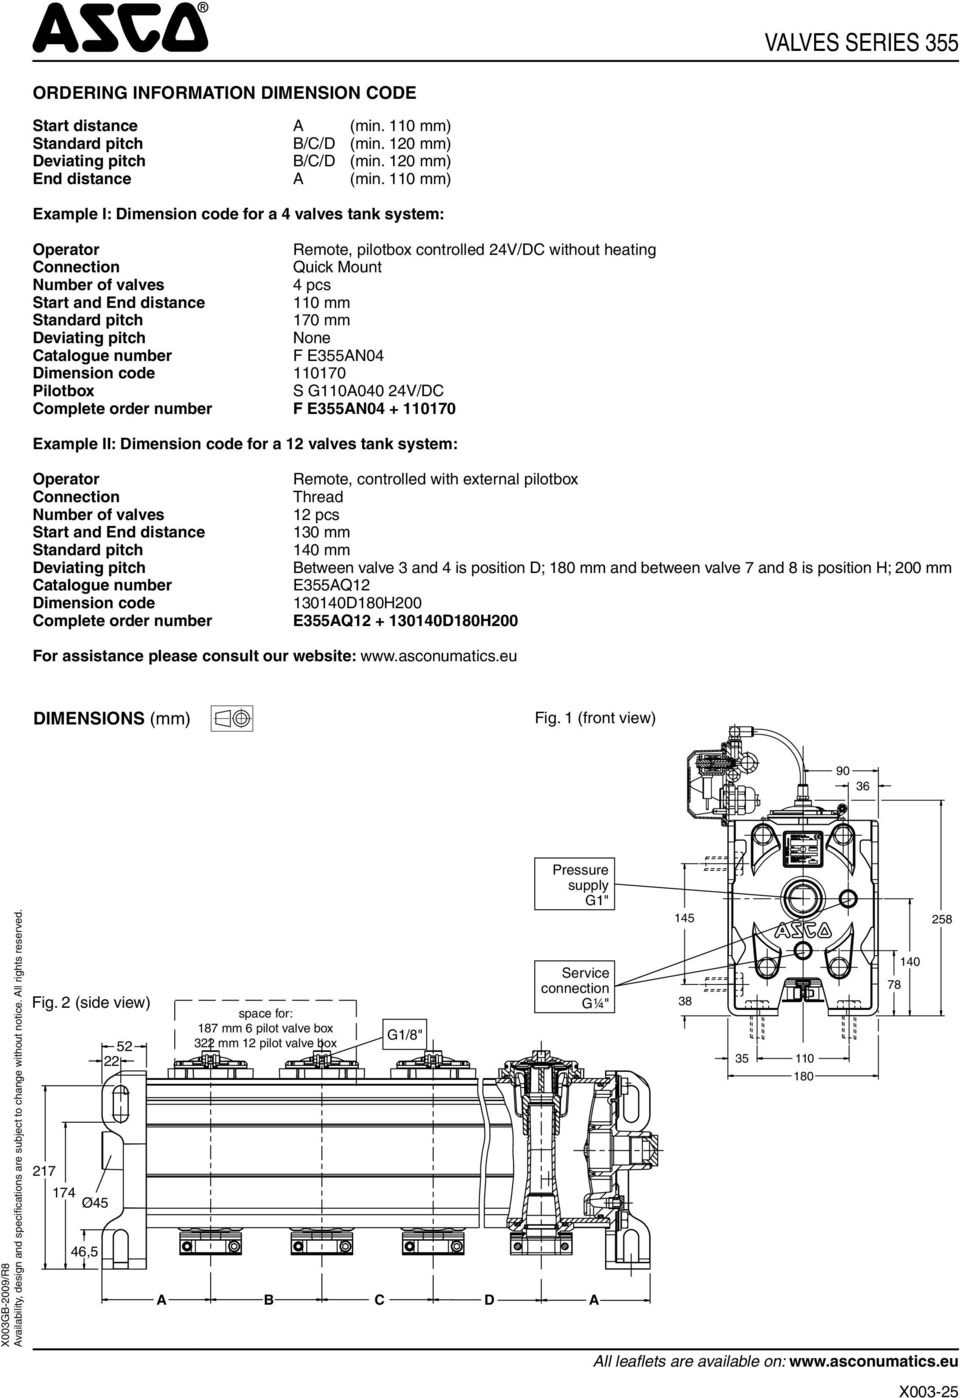 Standard pitch 170 mm eviating pitch None atalogue 355N04 imension code 110170 Pilotbox S 110040 24V/ omplete order 355N04 + 110170 xample II: imension code for a 12 valves tank system: Operator